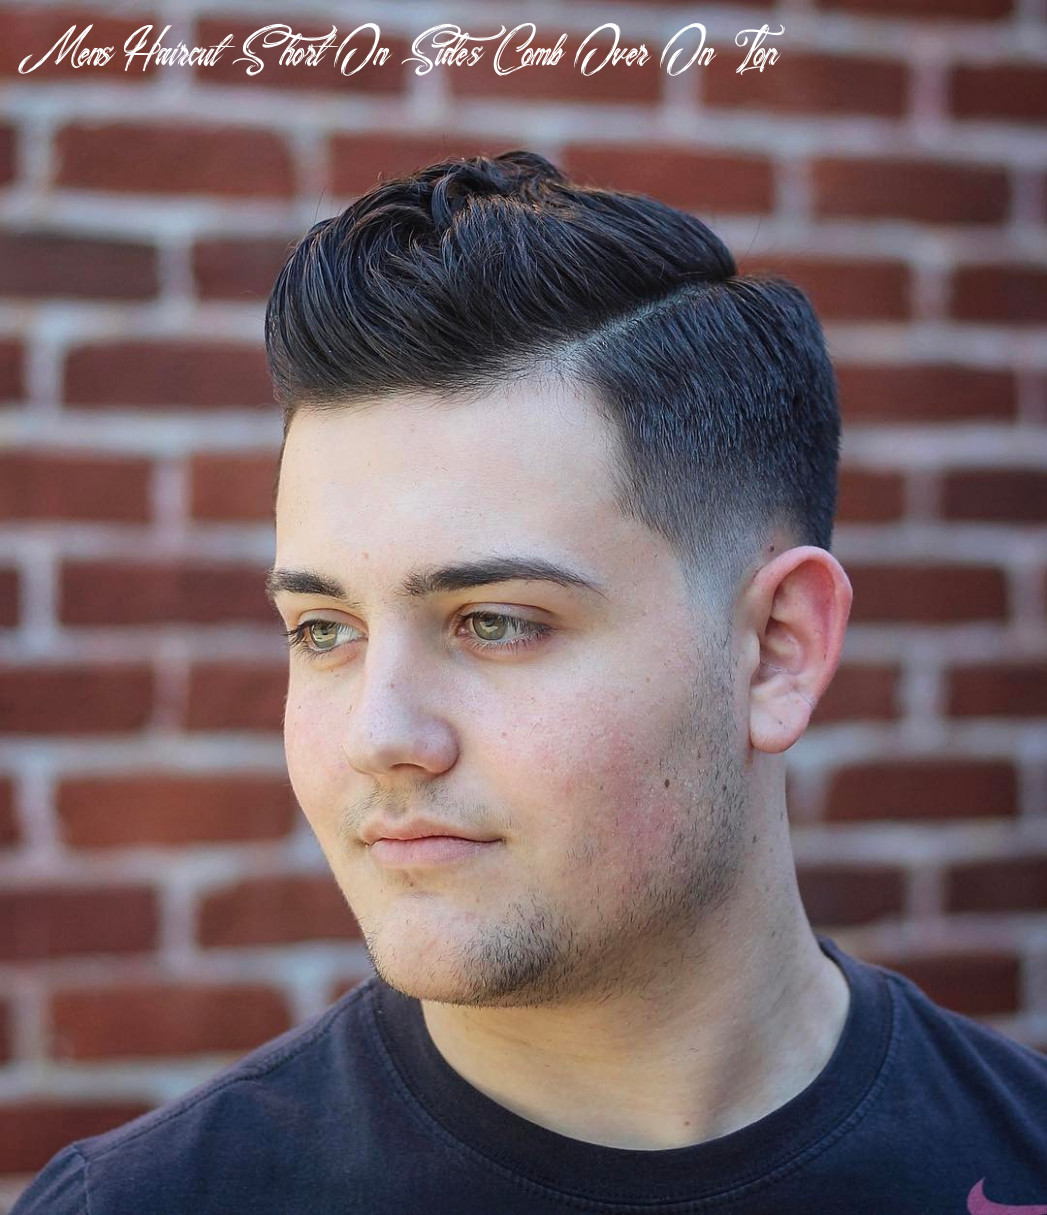 10 comb over haircuts > cool new styles for 10 mens haircut short on sides comb over on top